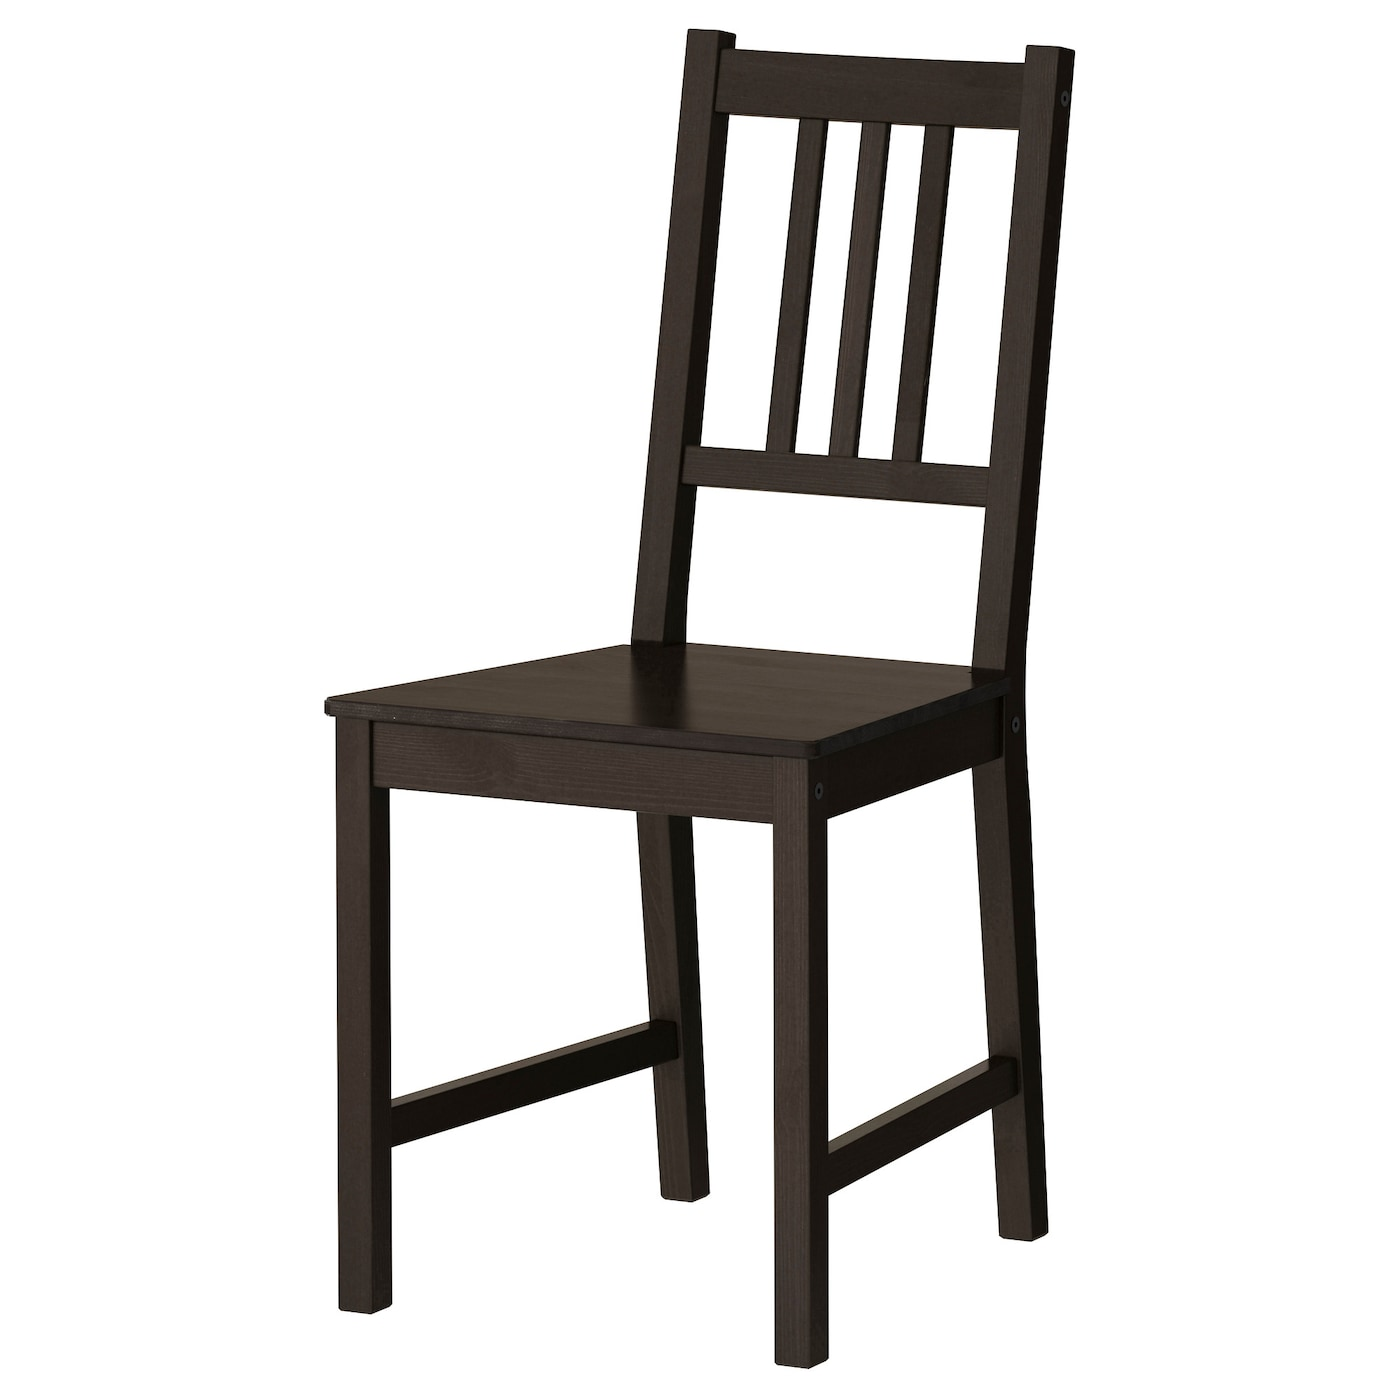 IKEA STEFAN chair Solid wood is a hardwearing natural material. Chairs   Upholstered   Foldable Dining Chairs   IKEA